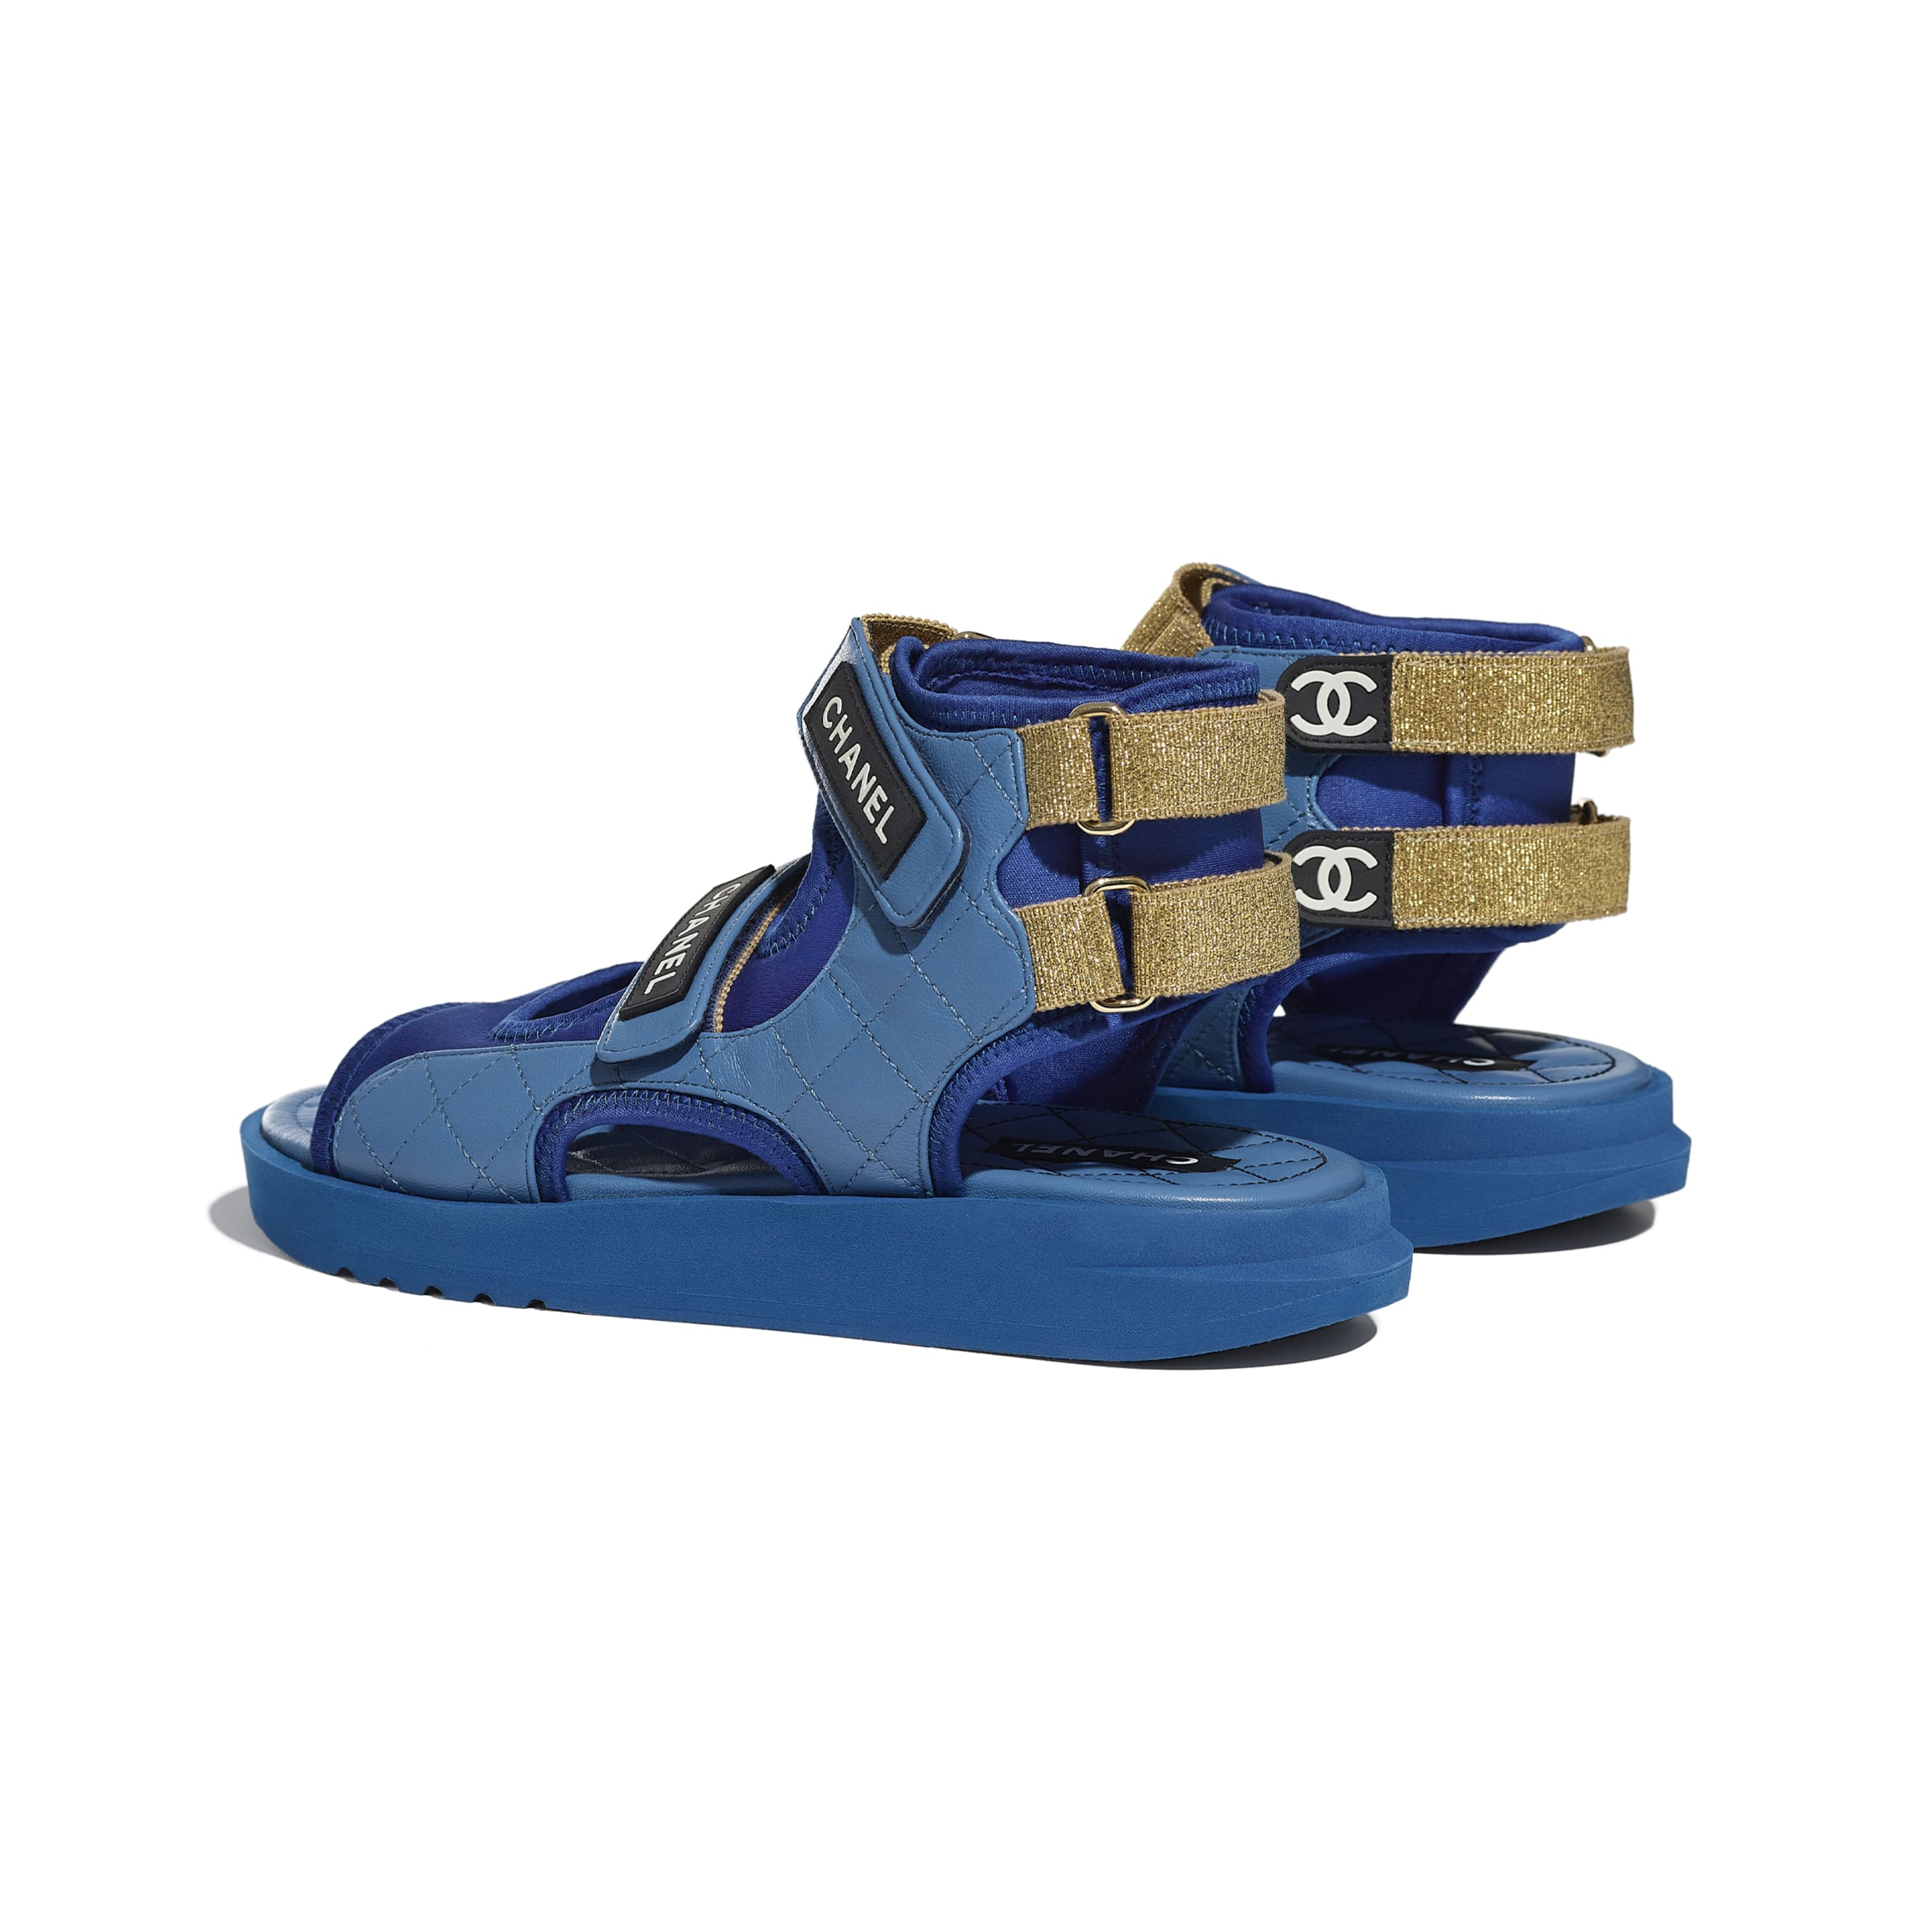 Sandals - Blue, Dark Blue & Black - Goatskin, Fabric & TPU - CHANEL - Other view - see standard sized version